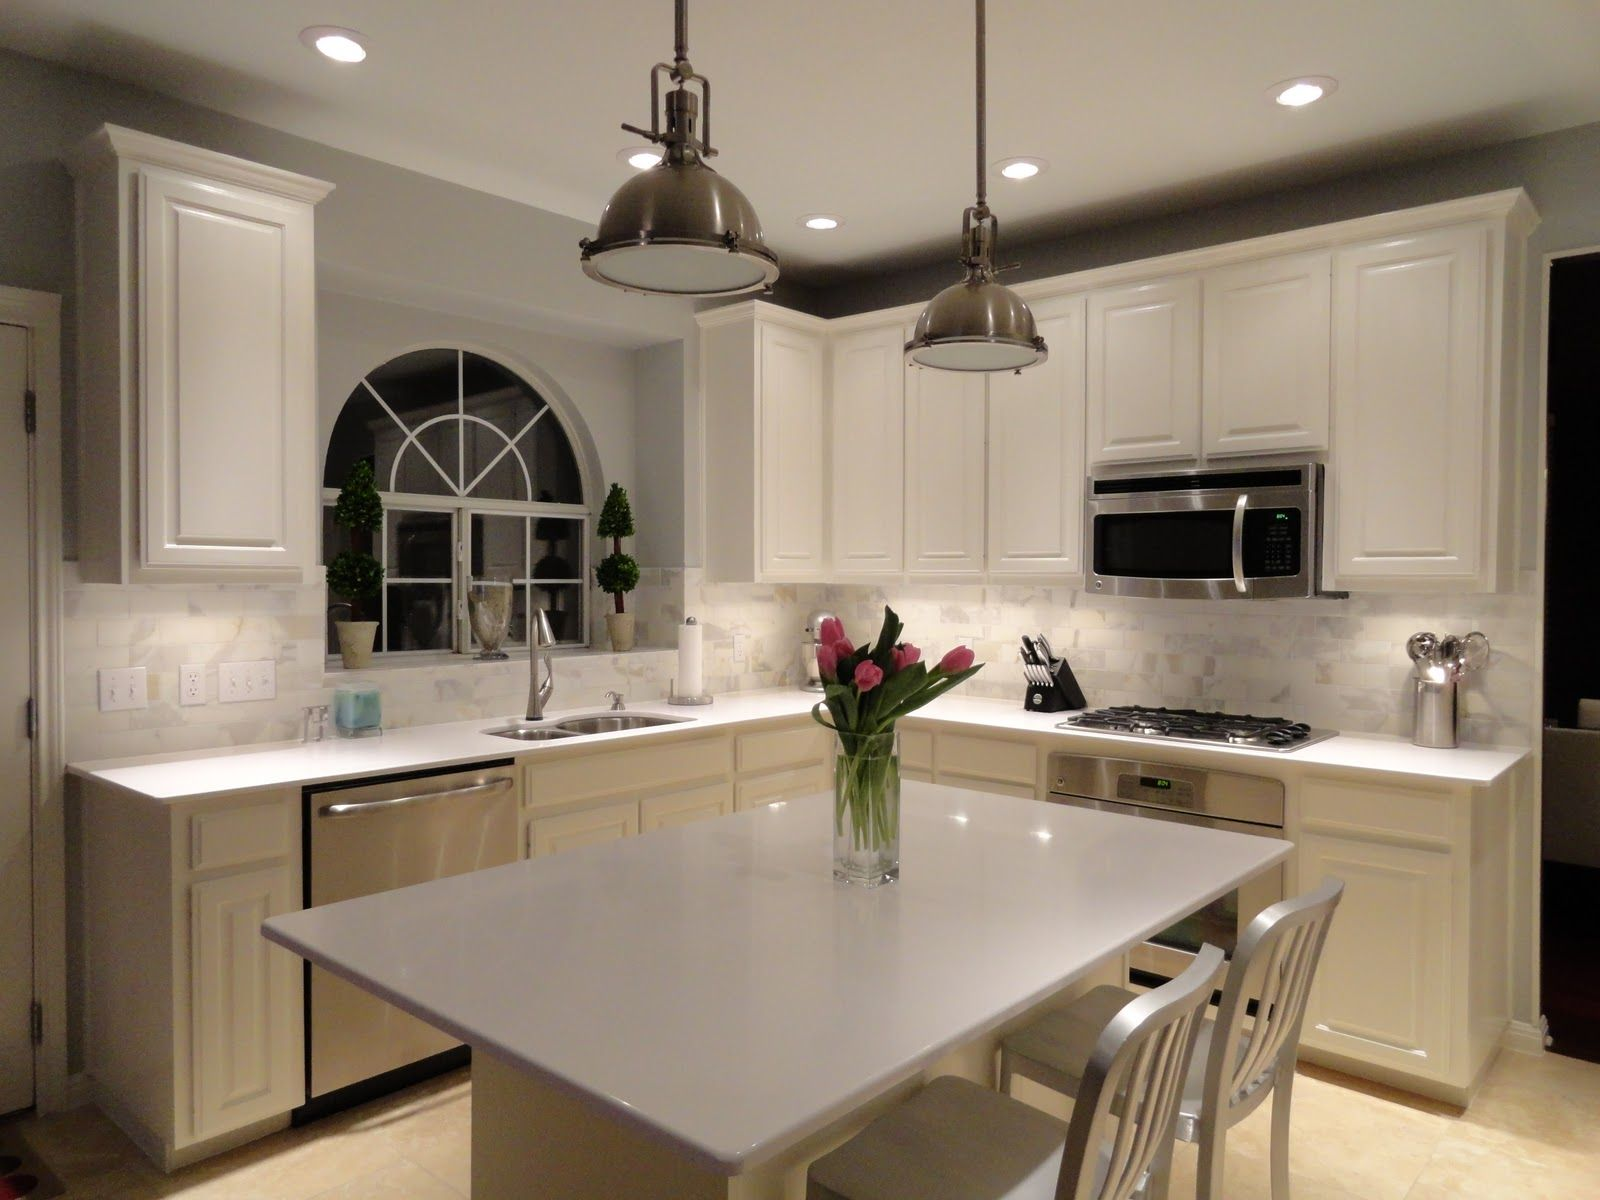 Modern Kitchen Quartz Countertops cygnus silestone on white cabinets | we had the cabinets painted